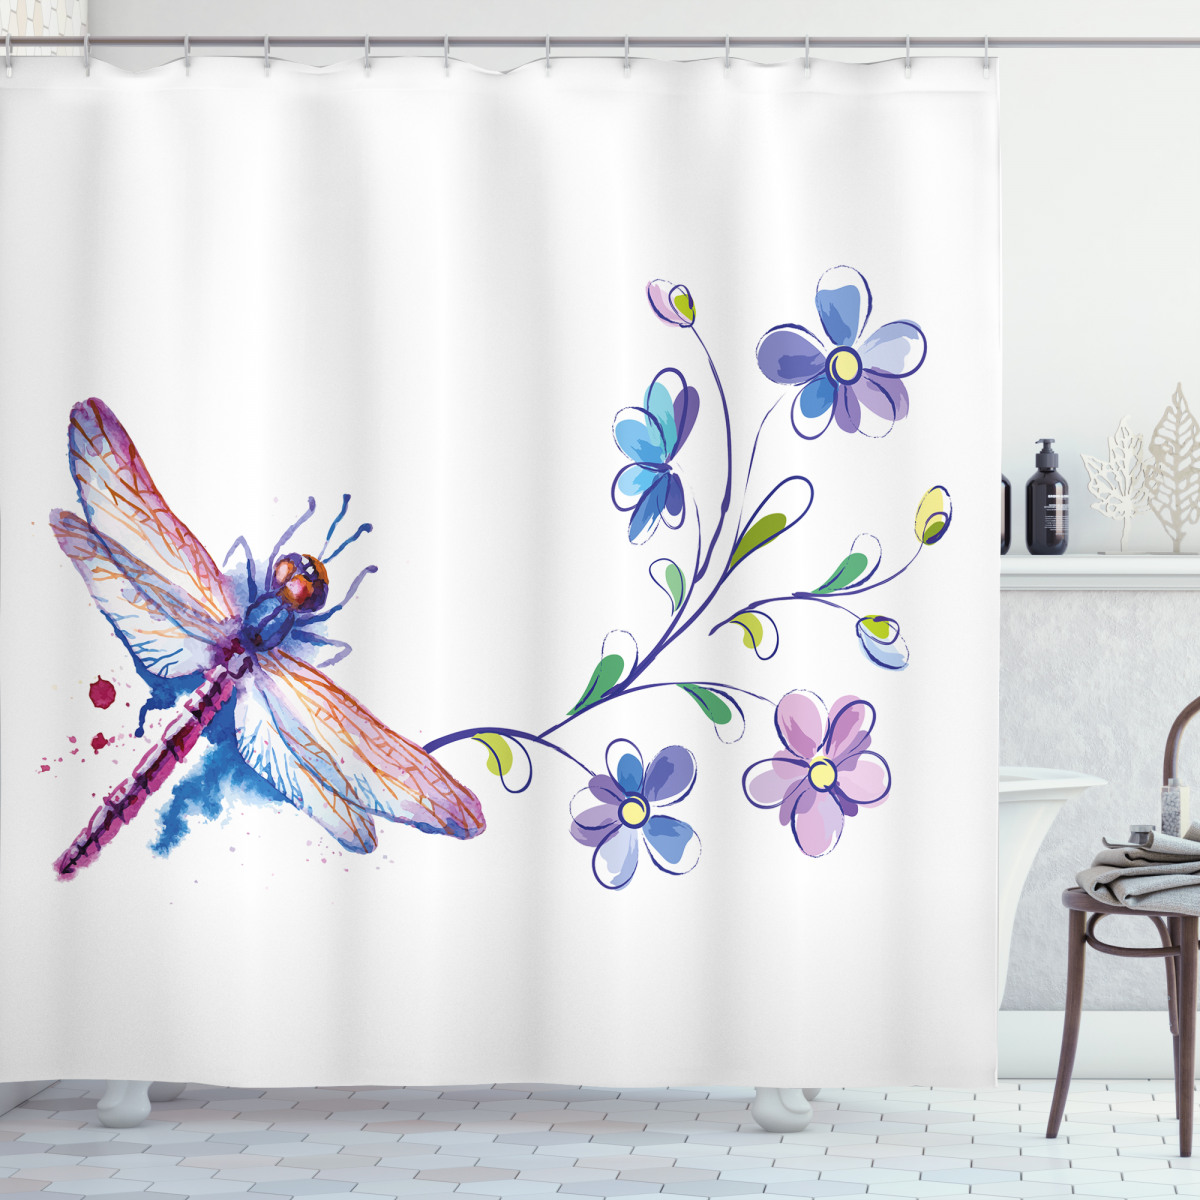 Ivy Flowers Dragonflies Shower Curtain